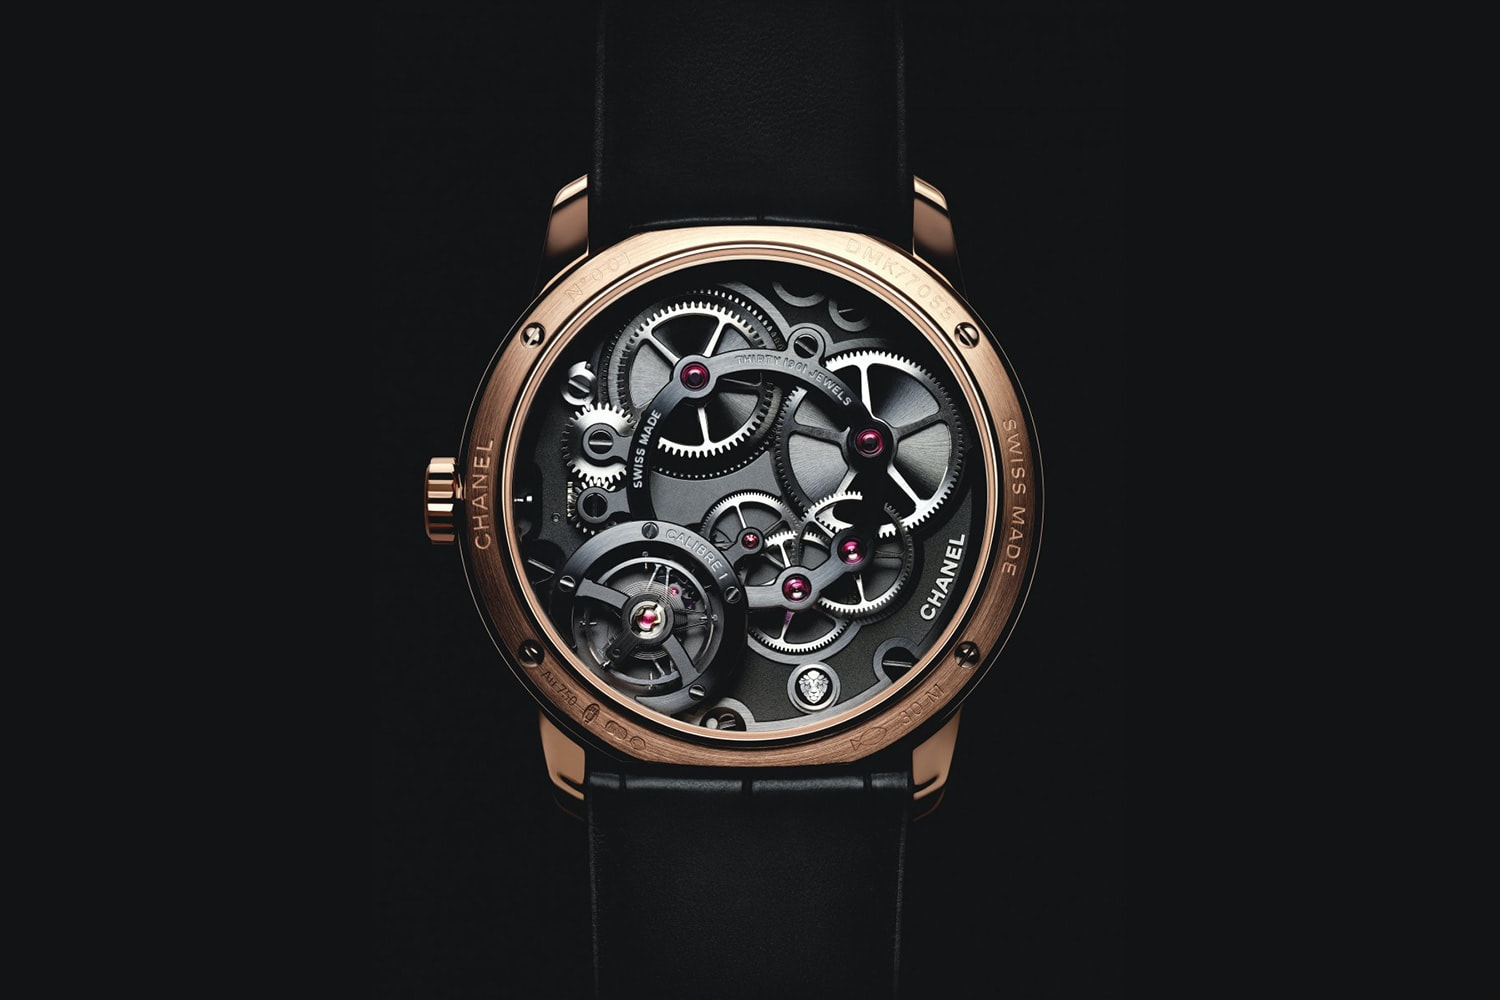 Introducing: The Monsieur de Chanel: Chanel's First Dedicated Men's Watch, And It's Completely In-House And VERY Impressive Introducing: The Monsieur de Chanel: Chanel's First Dedicated Men's Watch, And It's Completely In-House And VERY Impressive chanel monsieur de chanel mens watch 03